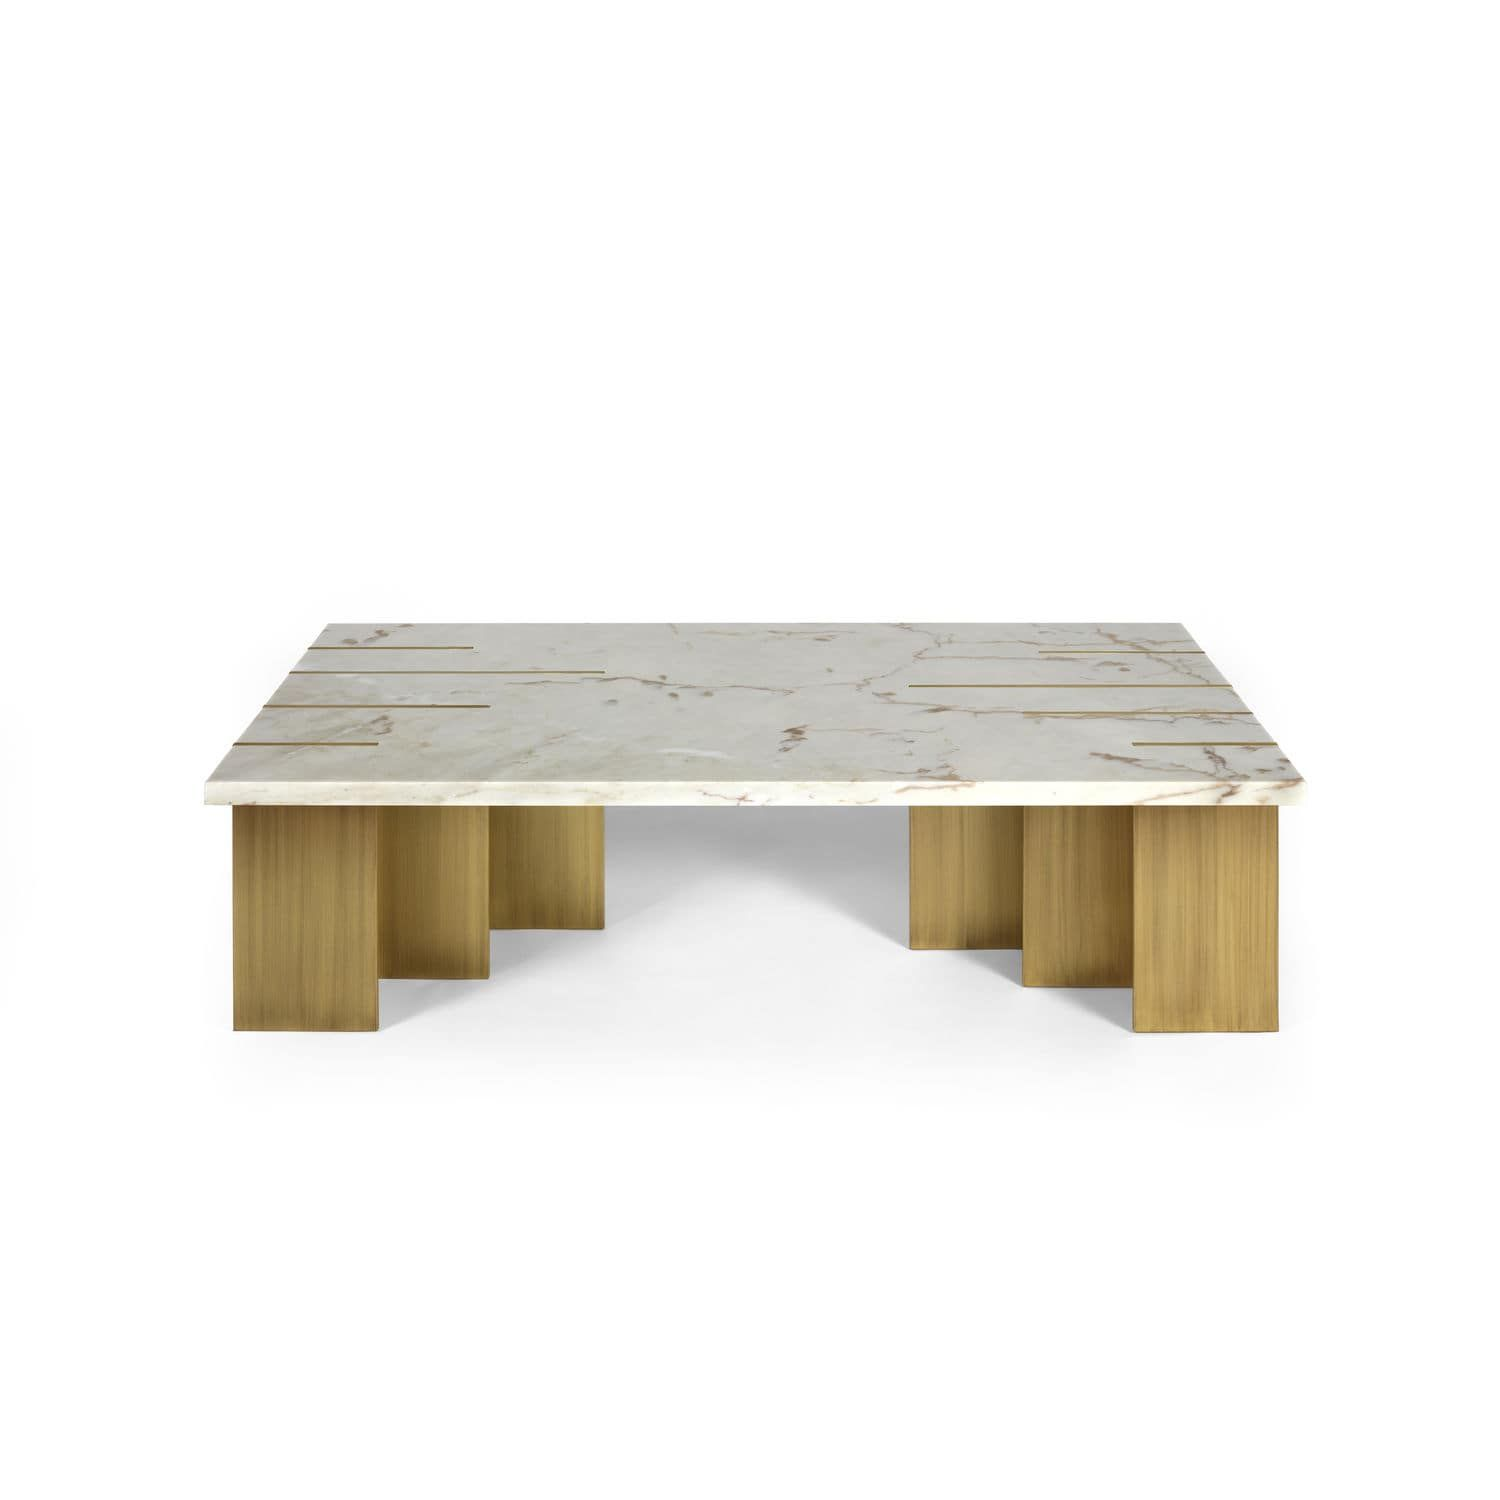 Pianist Table By Joana Santon Barbosa For Insidherland Coffee Table Table Furniture [ 1500 x 1500 Pixel ]